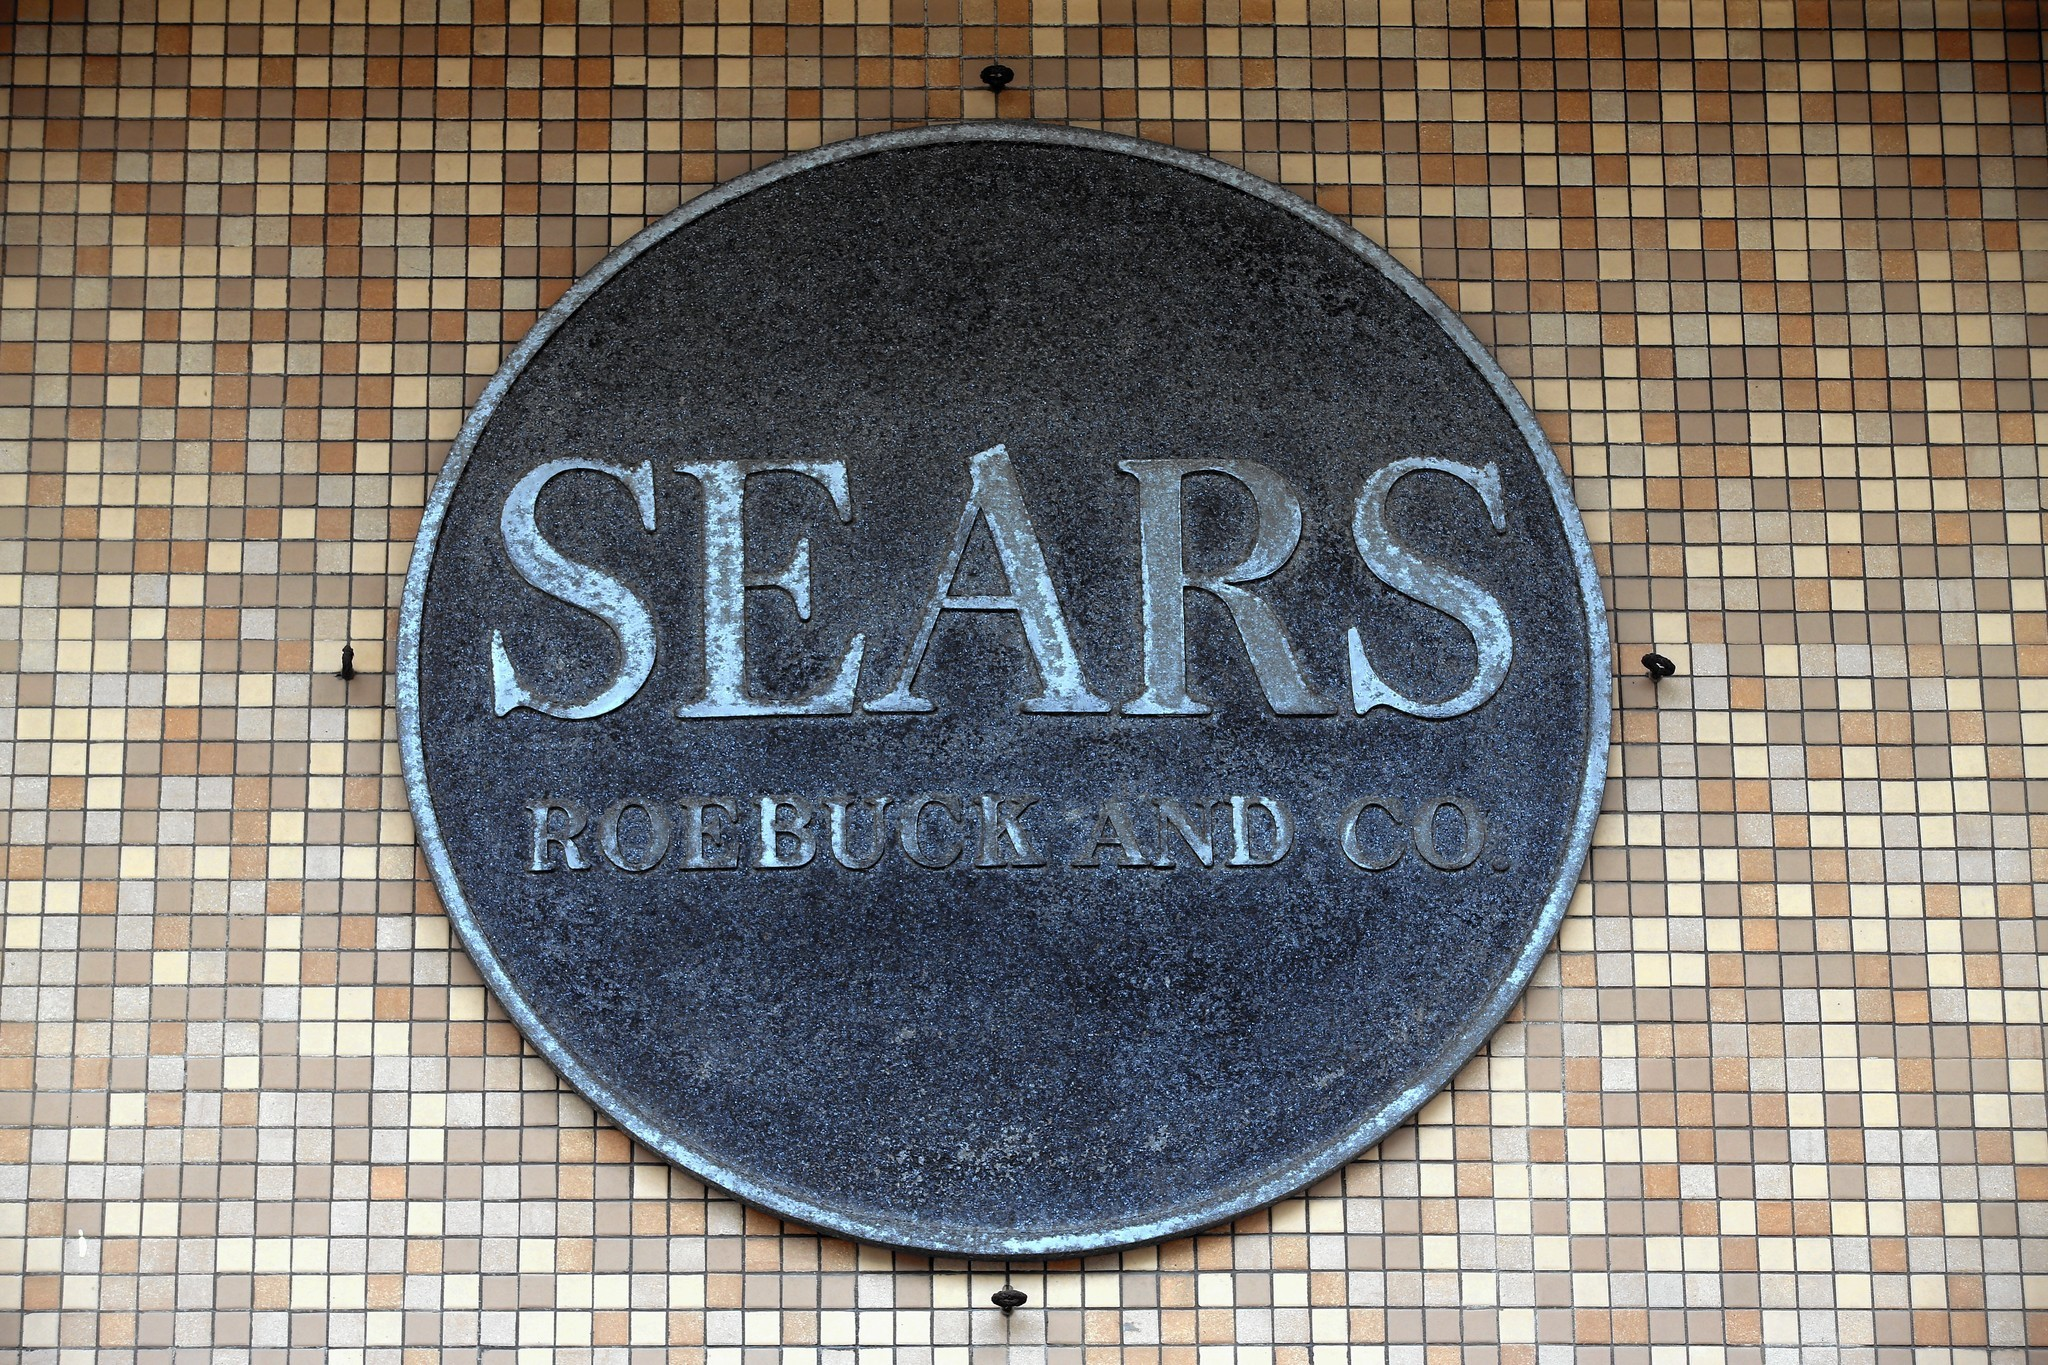 Help Squad Sears Customer Experiences The Fine Print In Her 30 Year